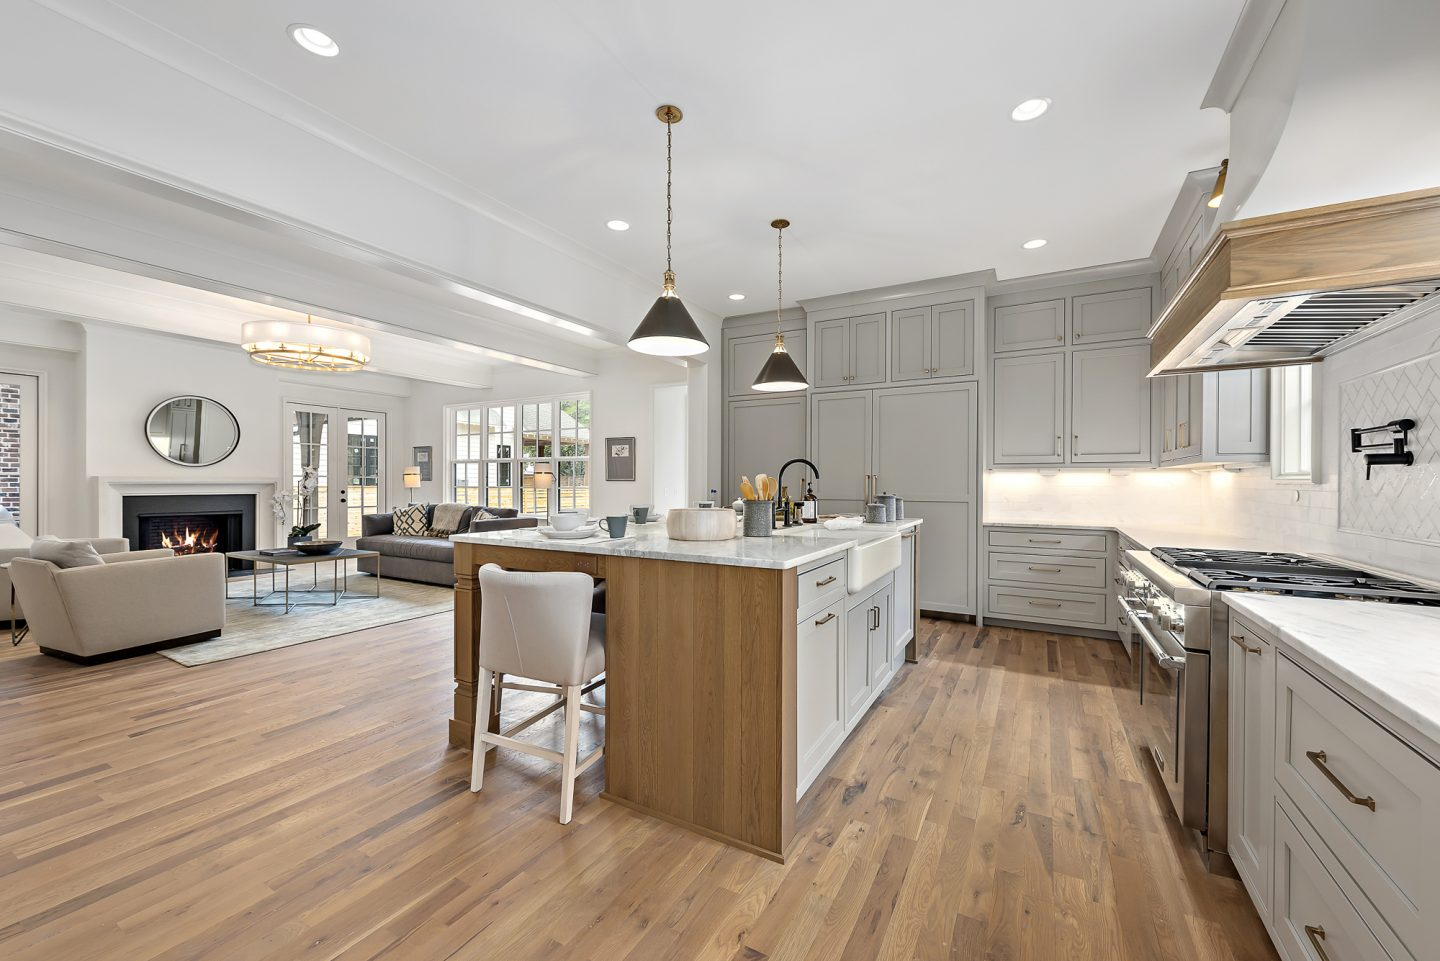 Luxury Modern Farmhouse Kitchen - Pike Properties - Charlotte, NC